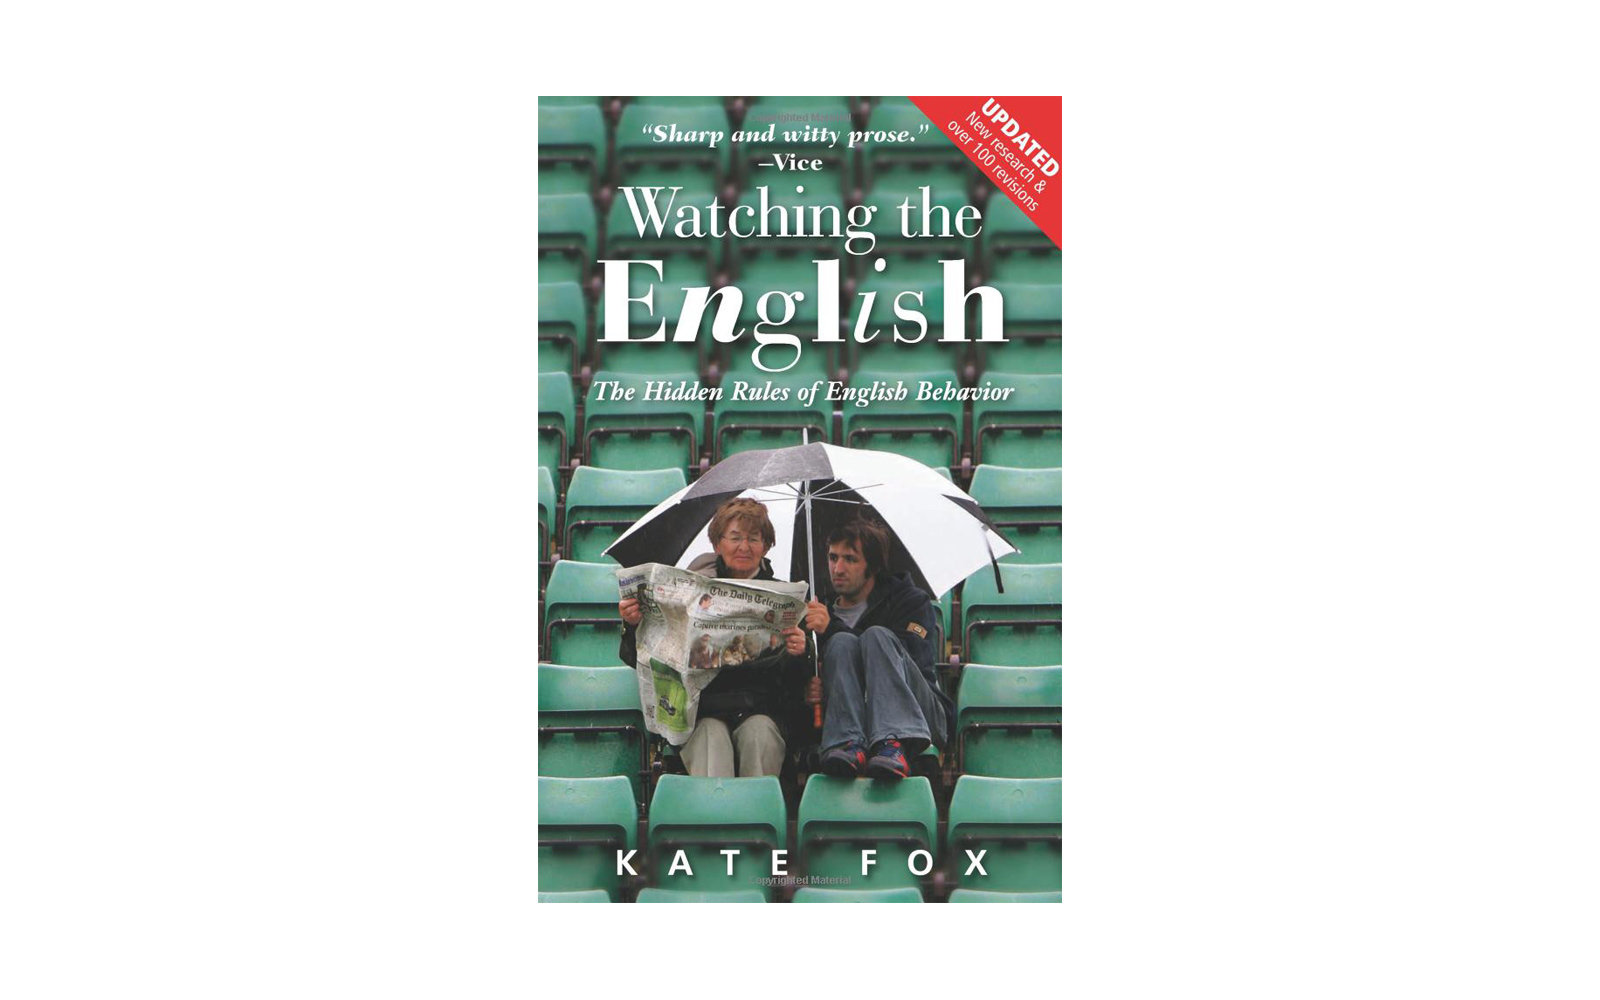 Watching English Hidden Rules English Behavior